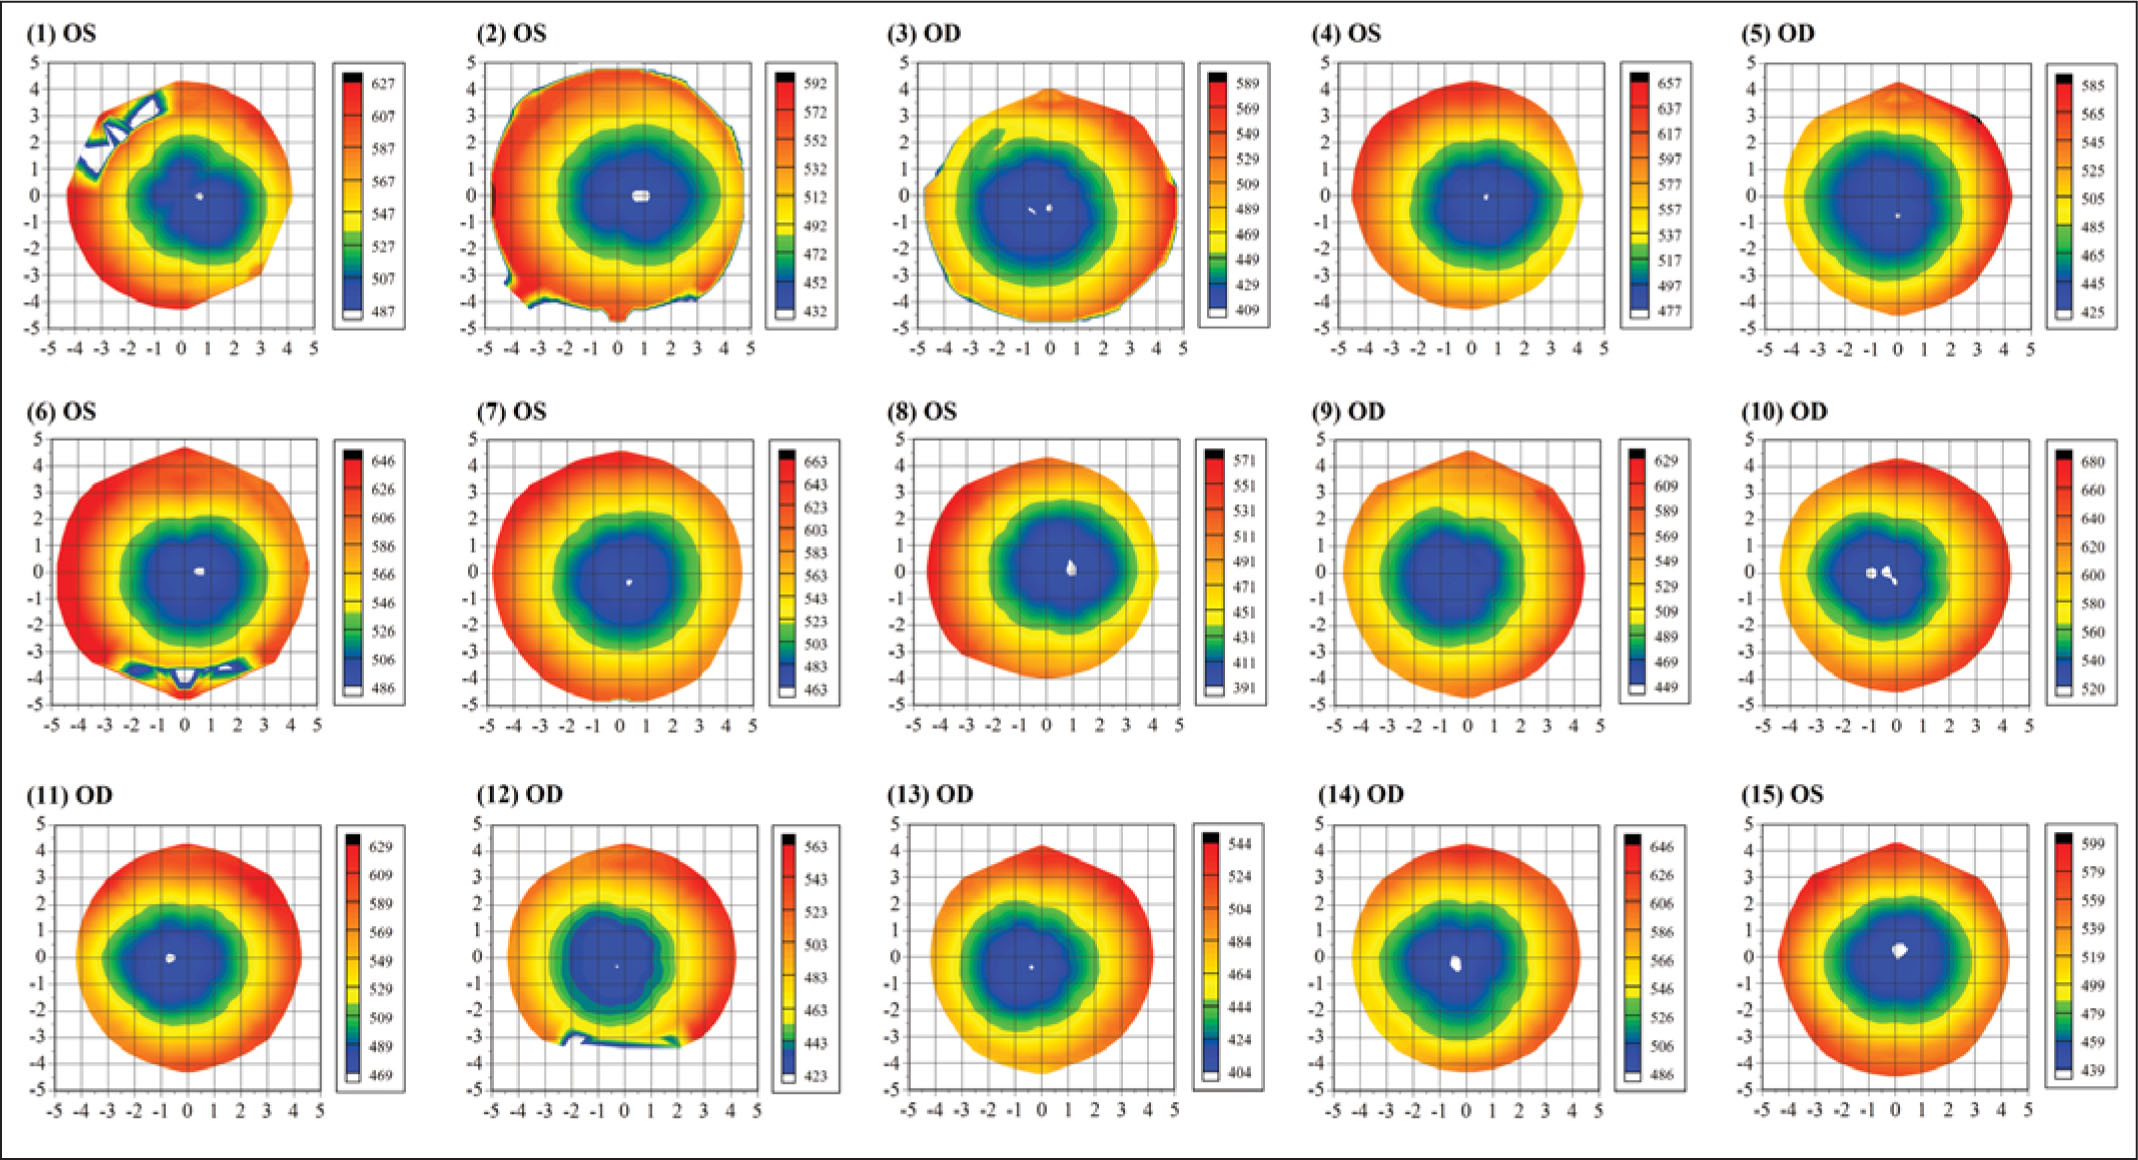 Stromal Thickness Maps of 15 Randomly Selected Eyes Each Plotted with an Individual Color Scale Representing the Stromal Thickness in Microns. A Cartesian 1-mm Grid Is Superimposed with the Origin at the Corneal Vertex. The Epithelial Thickness Profiles of the Same 15 Eyes Have Been Published Previously.18